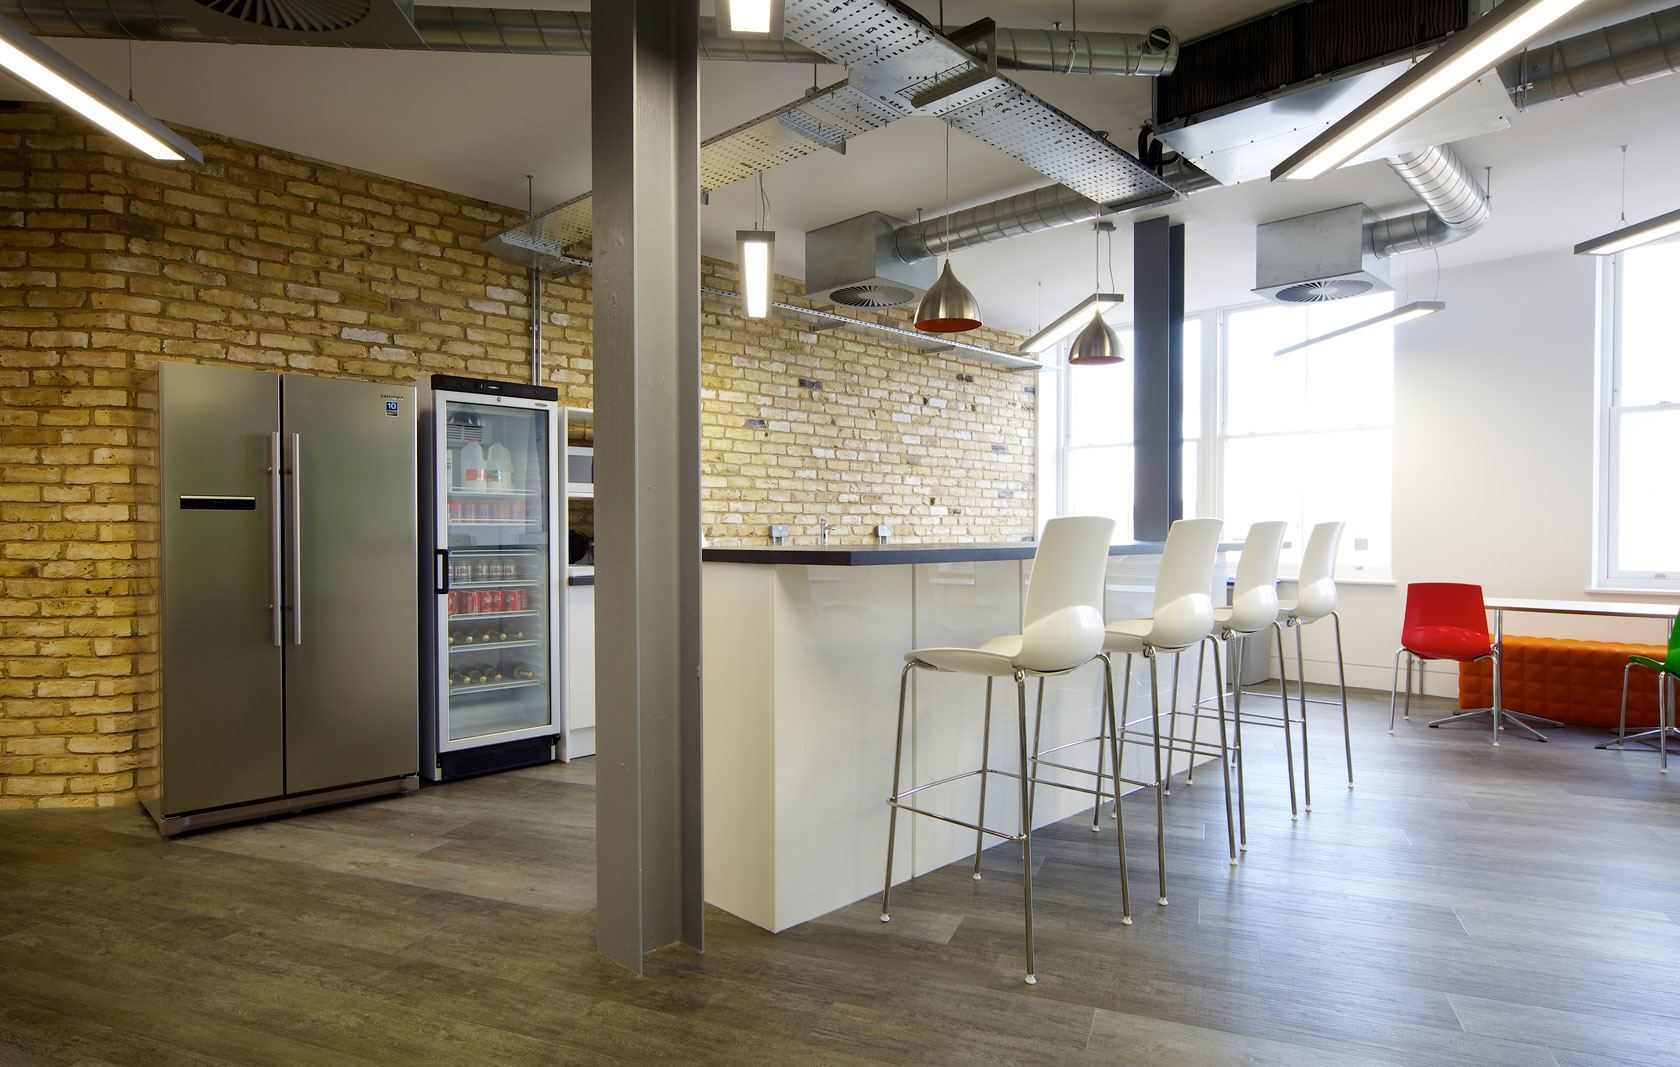 A Peek Inside Quidco's Funky London Office - Officelovin'